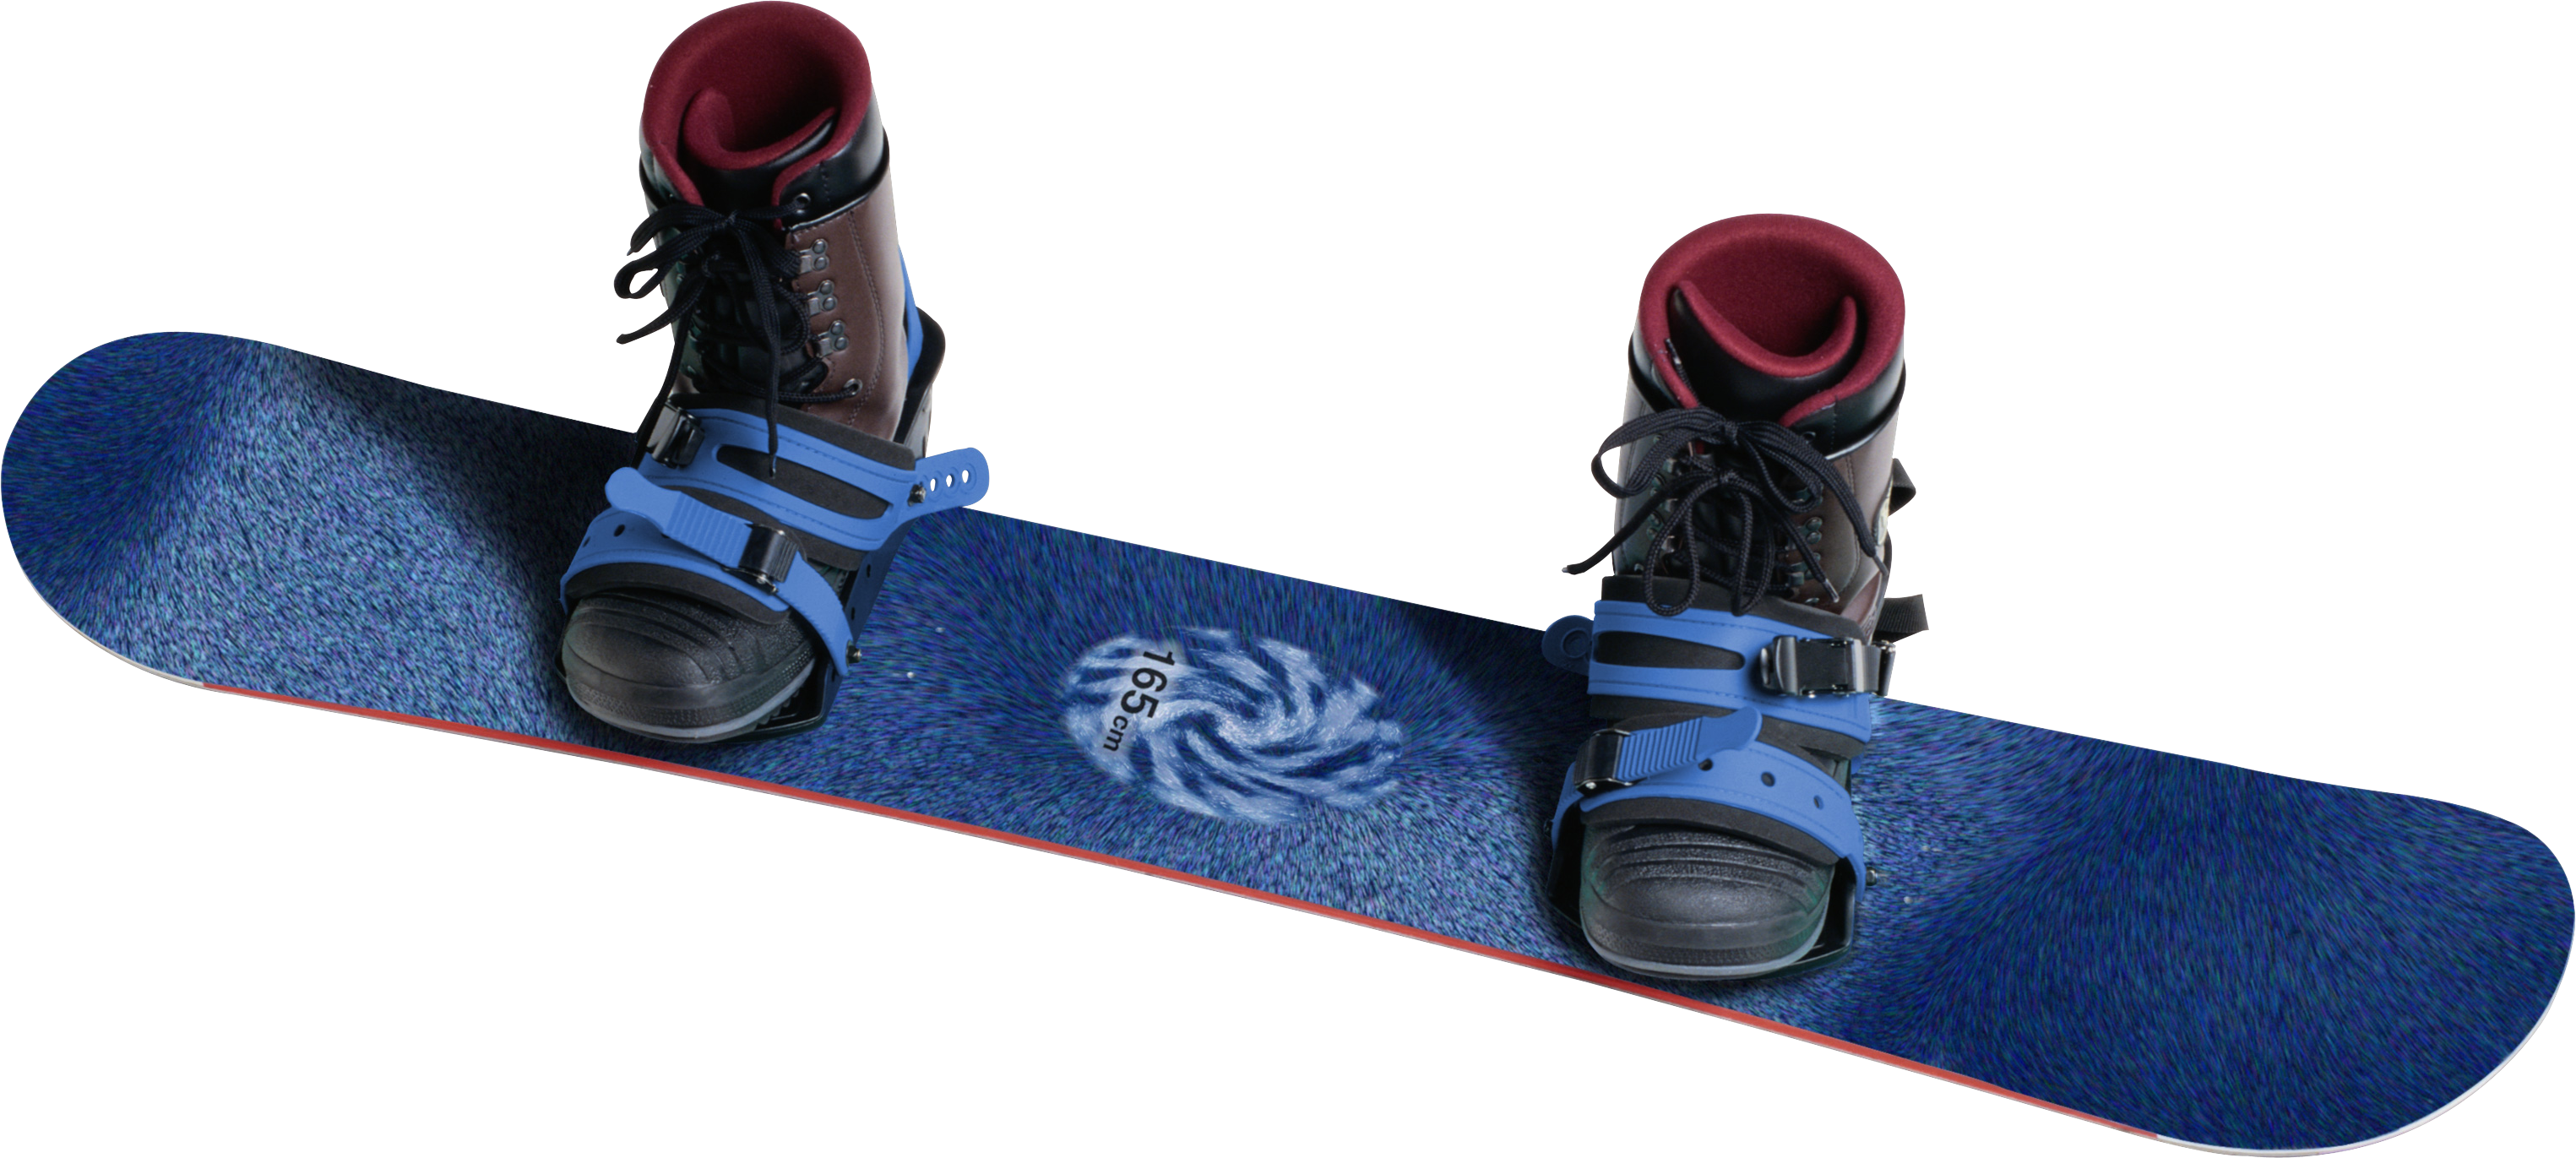 Men clipart snowboarding. Snowboard png images free